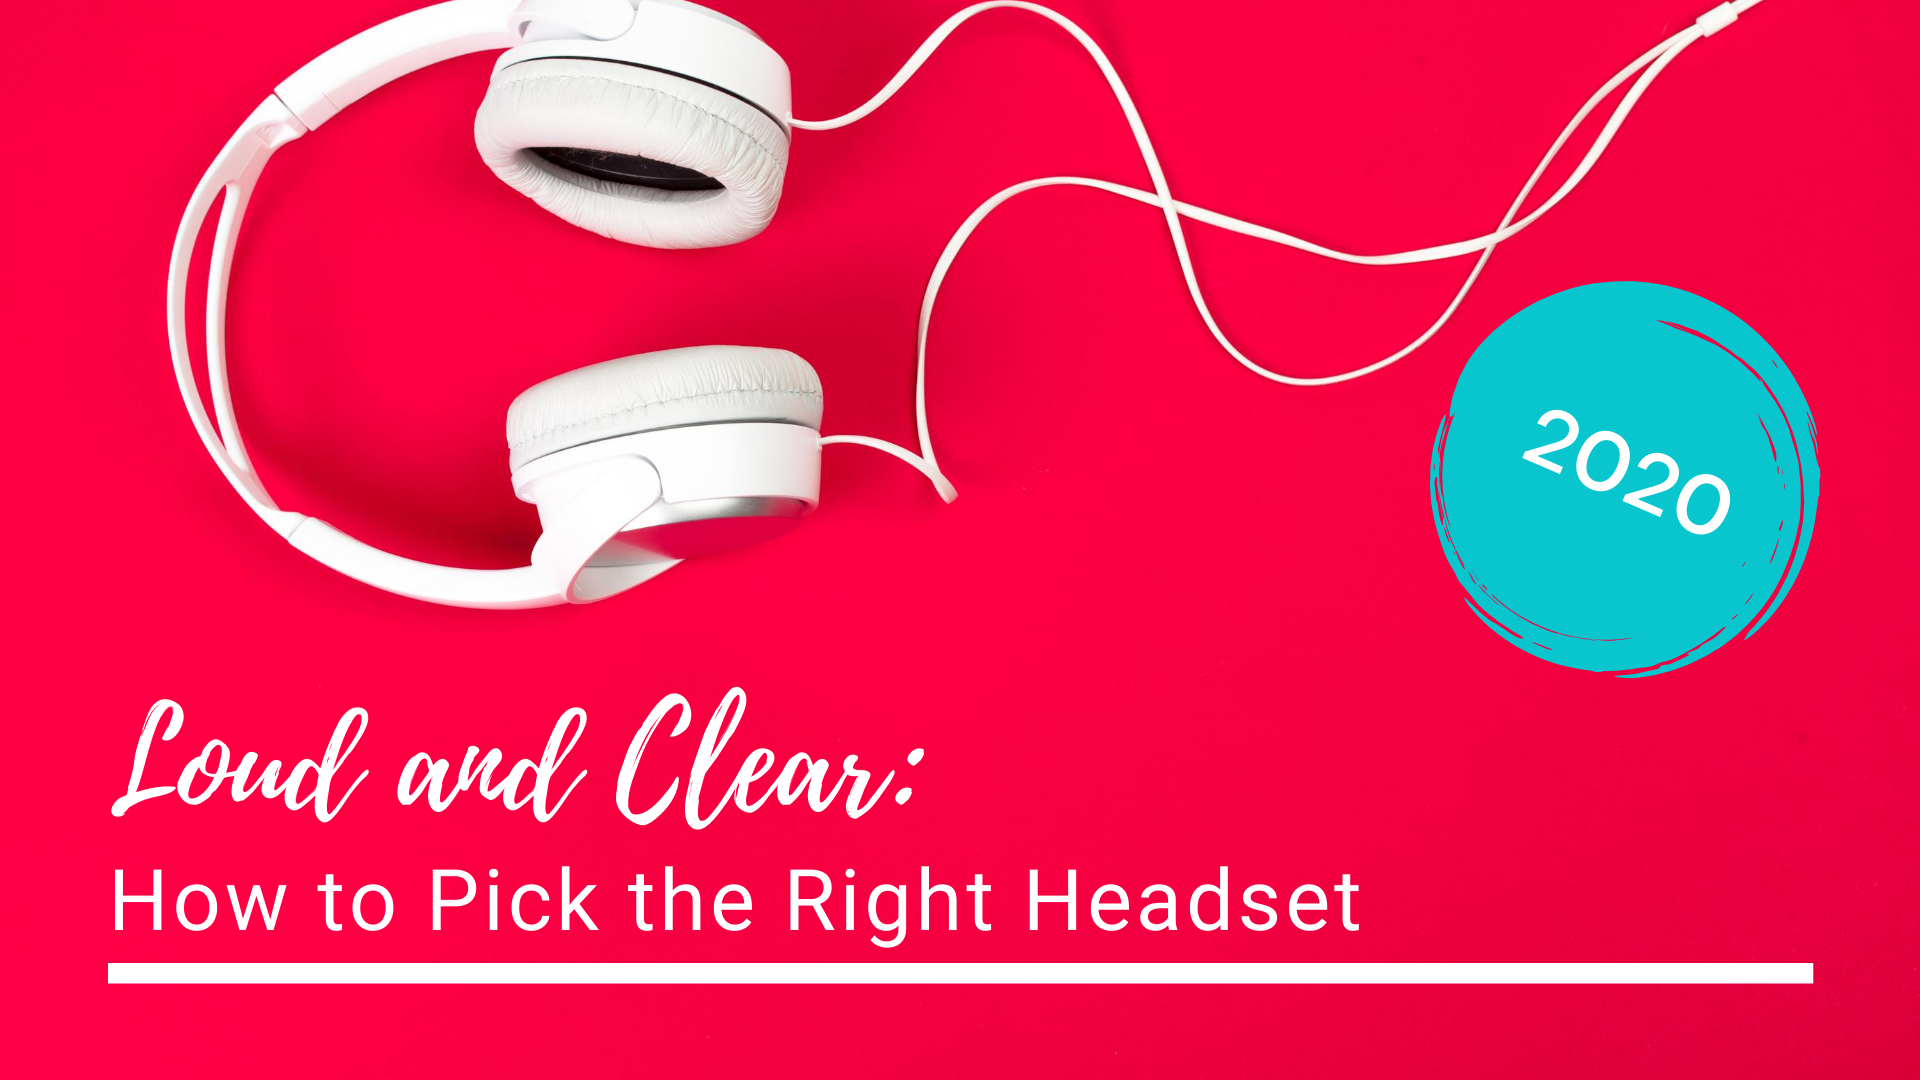 Loud and Clear 2020: How to Pick the Right Headset